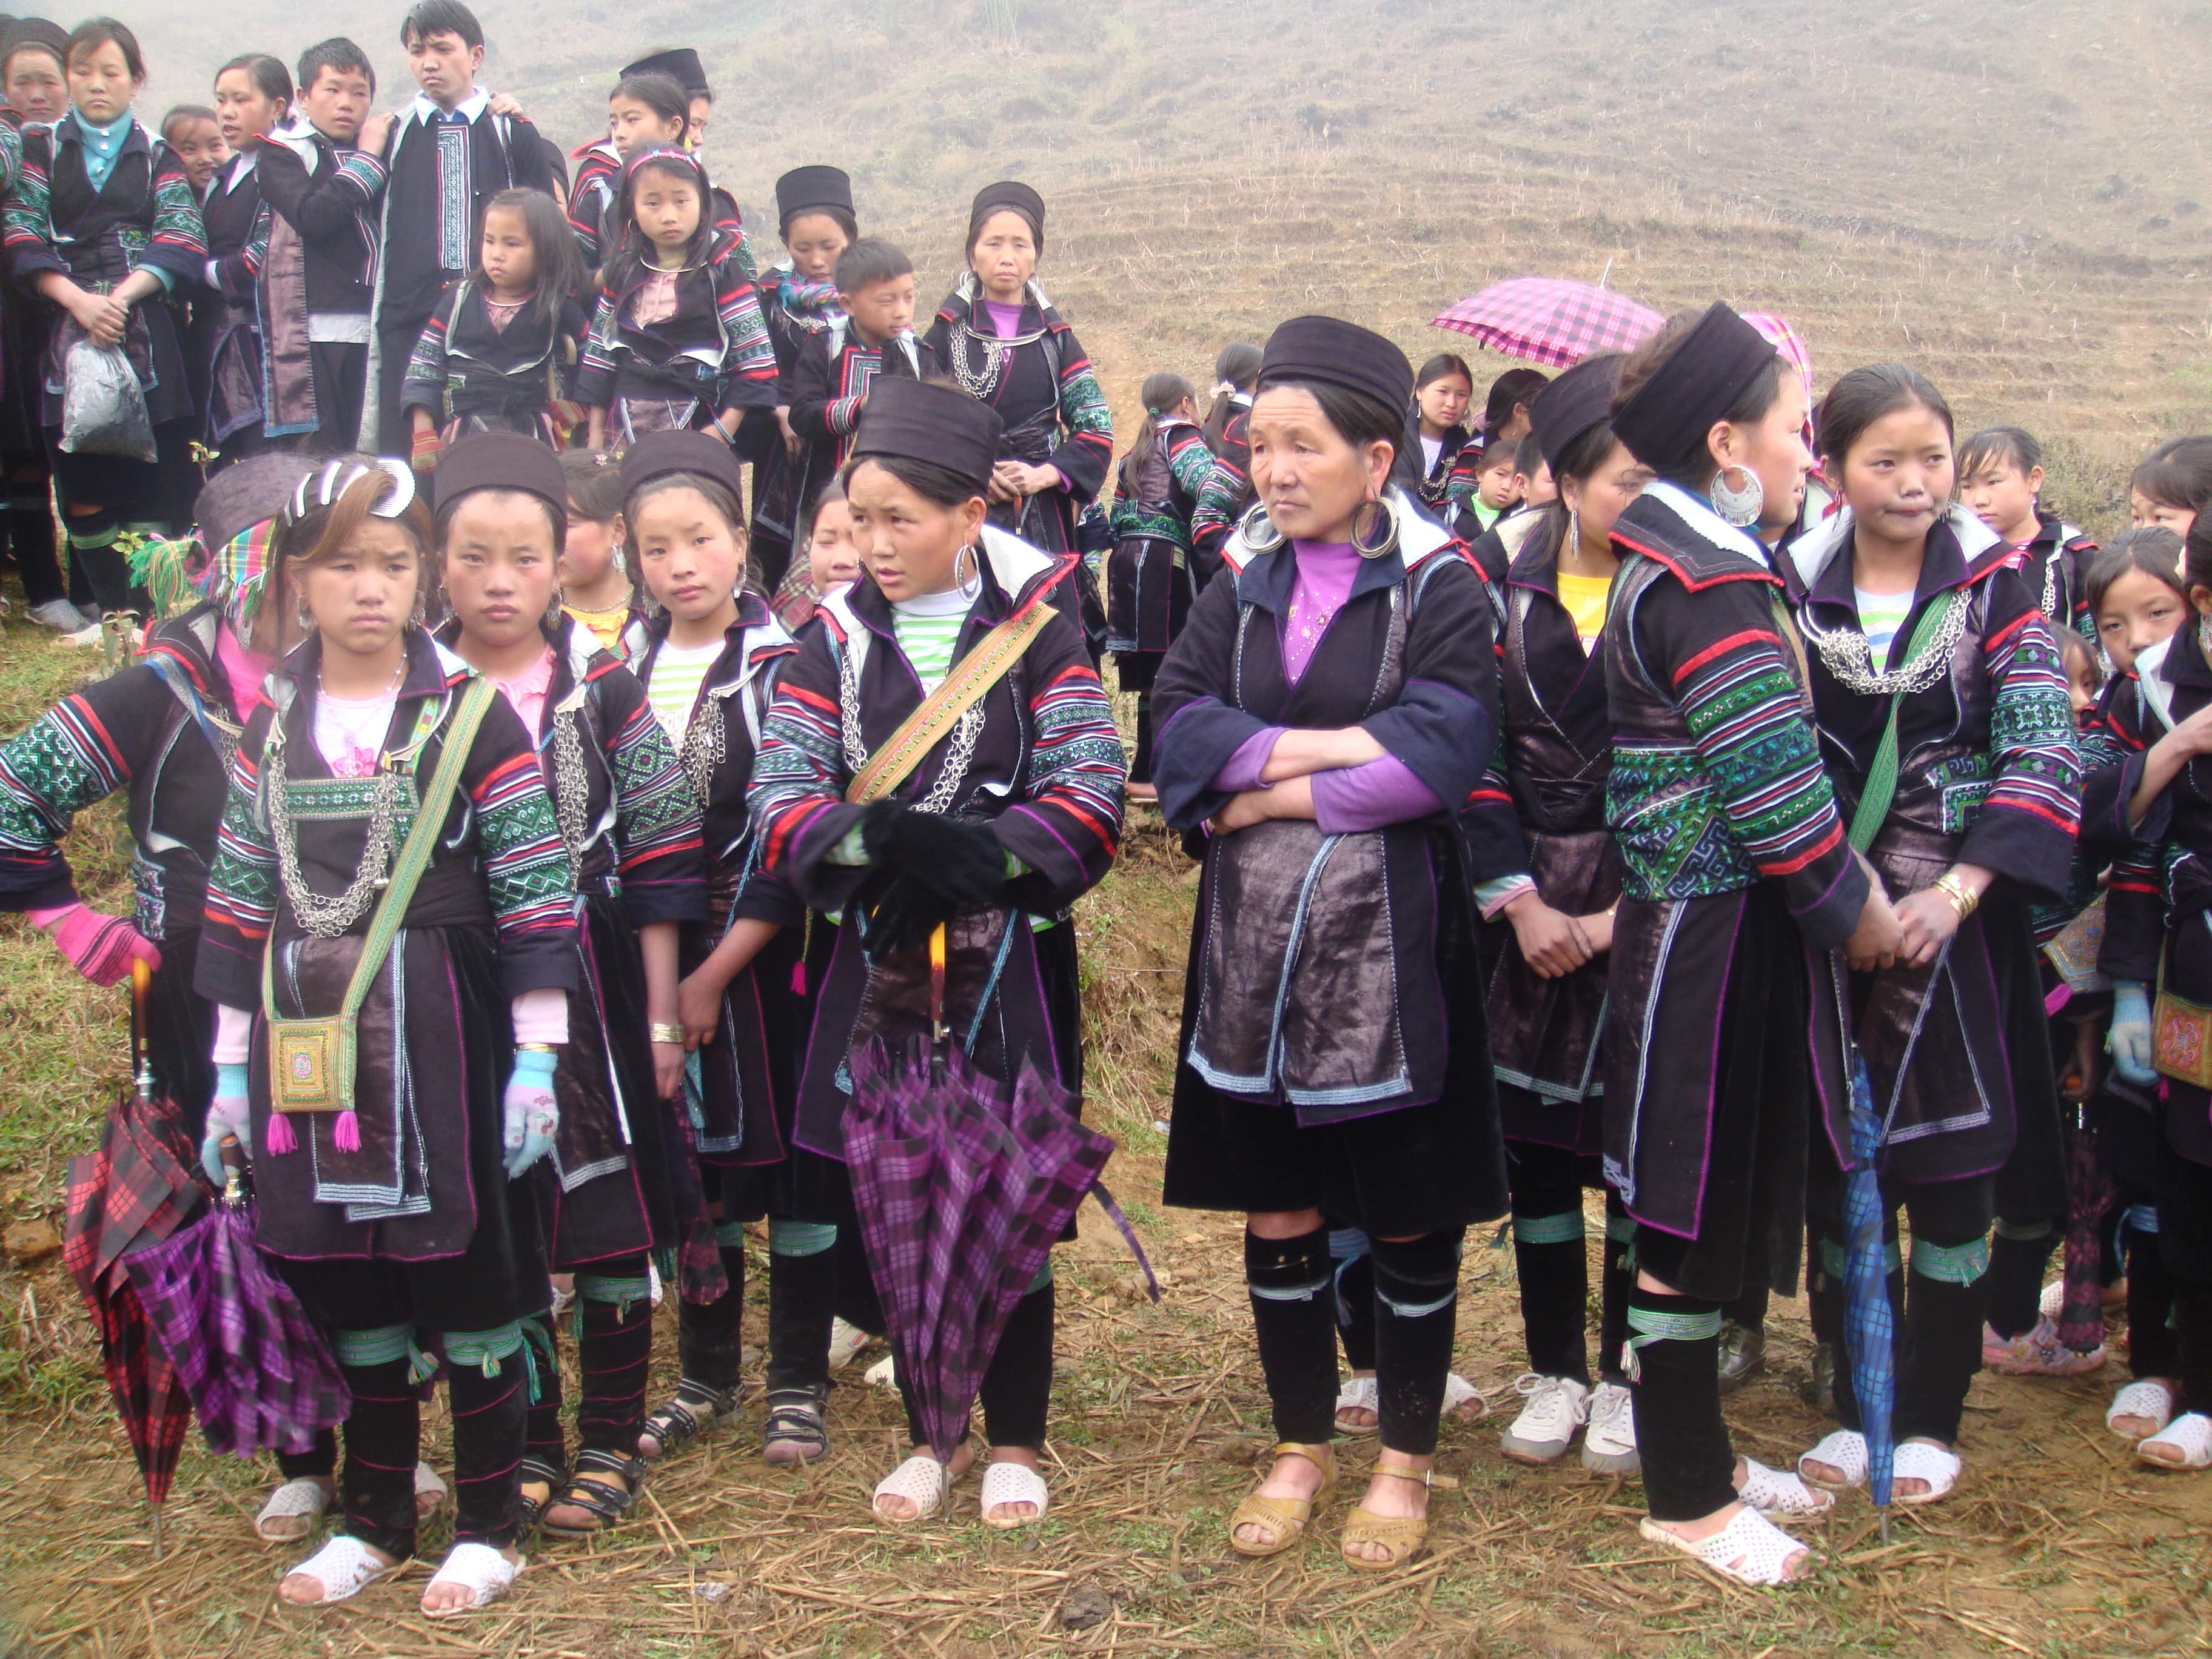 Mysterious stories about the costumes of the Mong people in Sapa